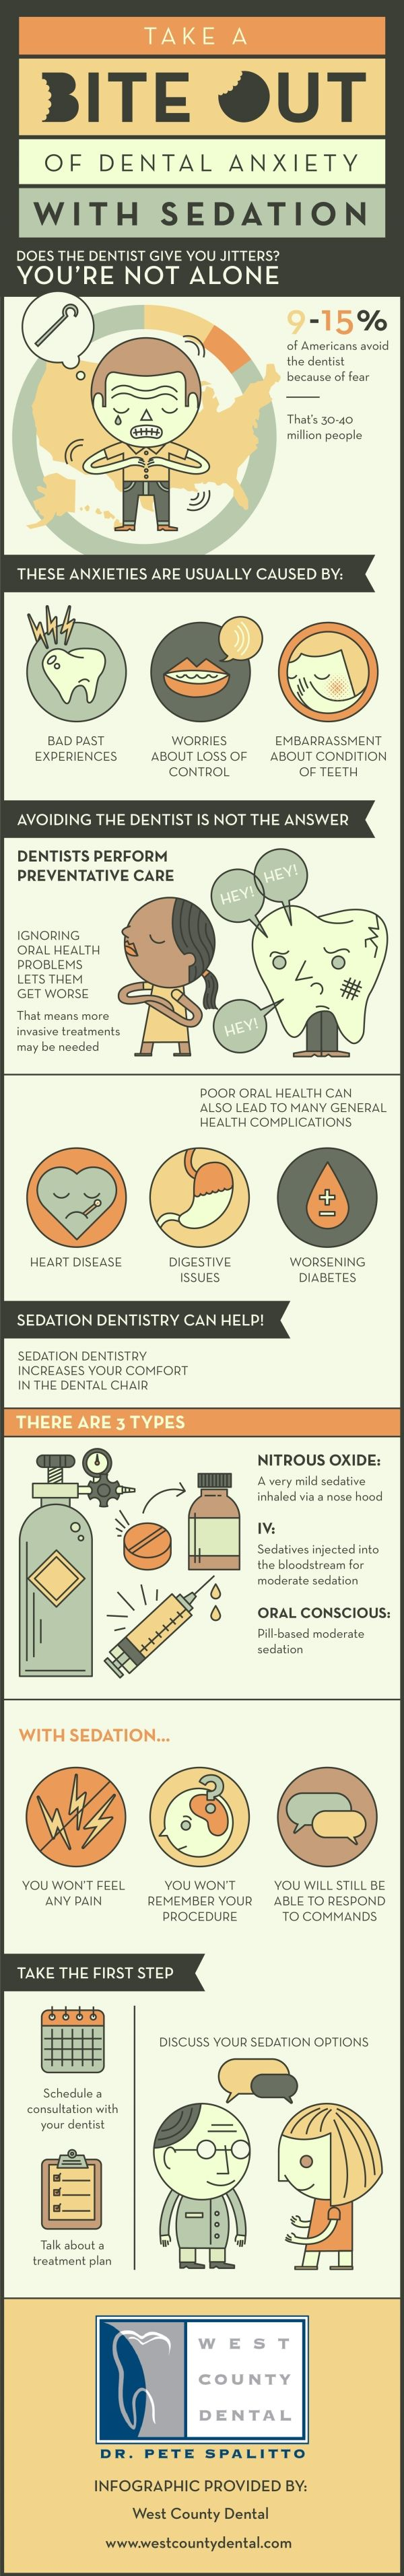 Sedation dentistry is great for patients suffering from dental anxiety! With sedation, you won't feel pain and won't remember your procedure but you will still be able to respond to commands. Click over to this St. Louis sedation dentistry infographic to see other perks.